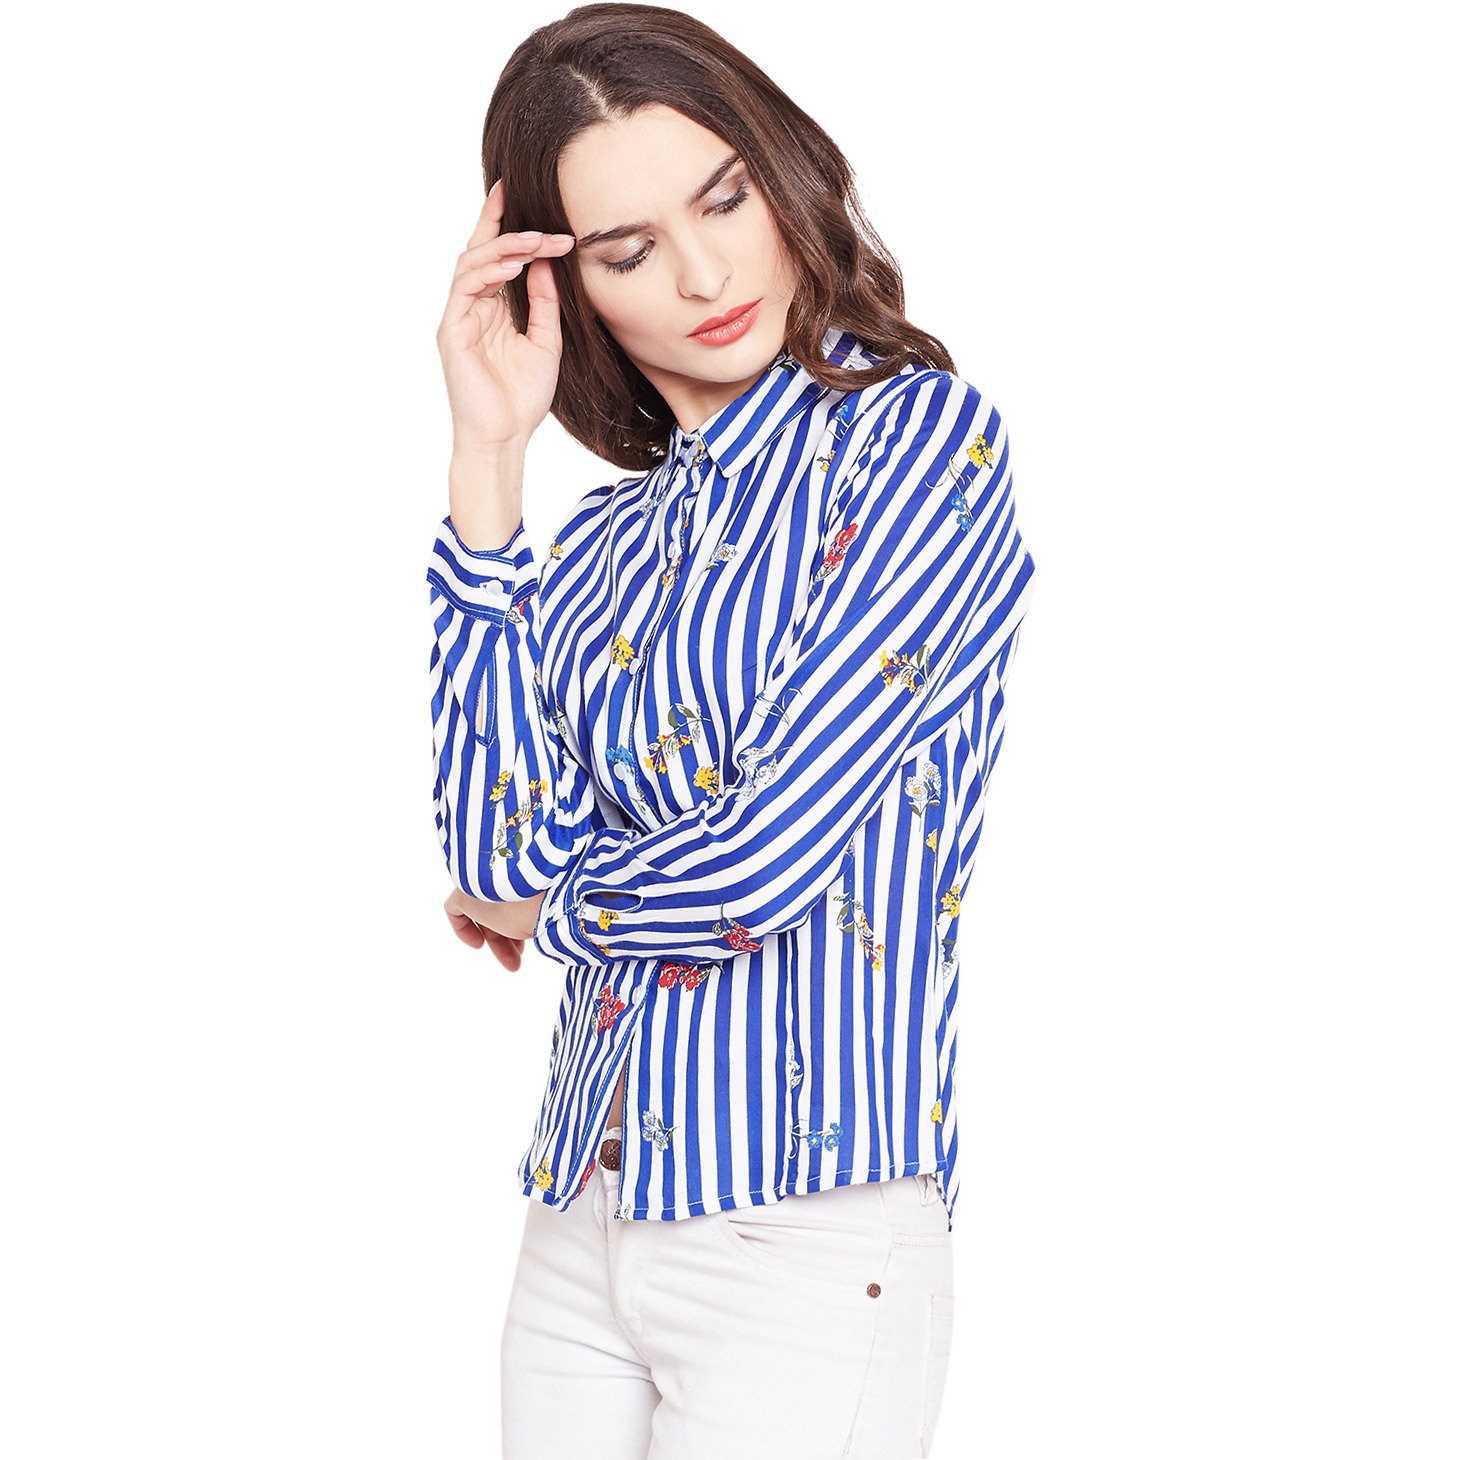 Purplicious Blue and White Floral Striped Casual Shirt